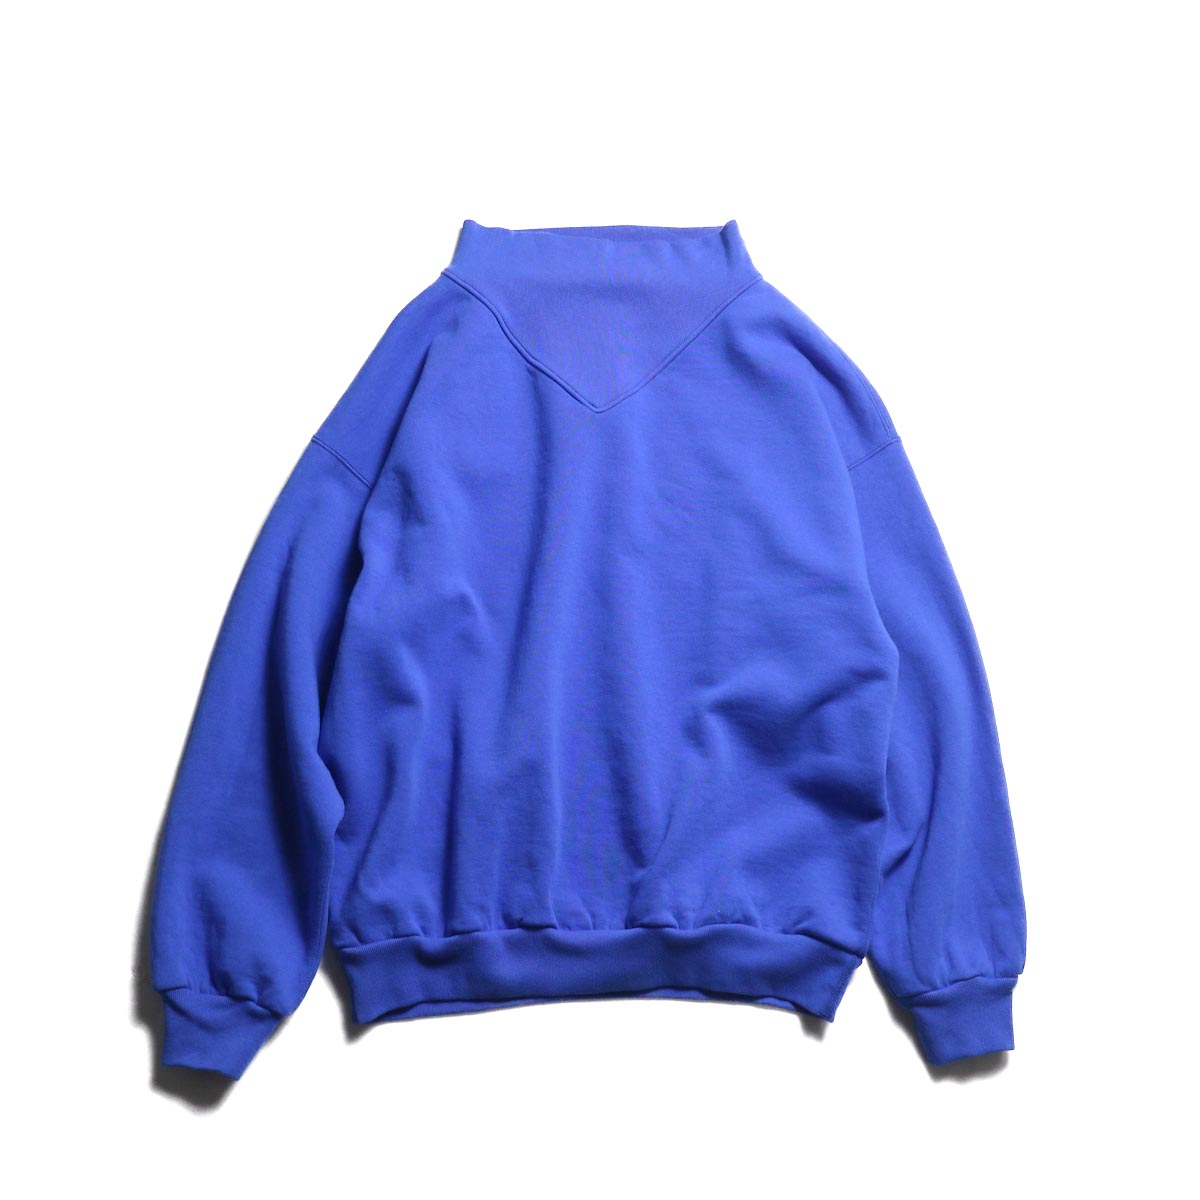 UNUSED / US1679 crew neck sweat shirt / women's. -Blue